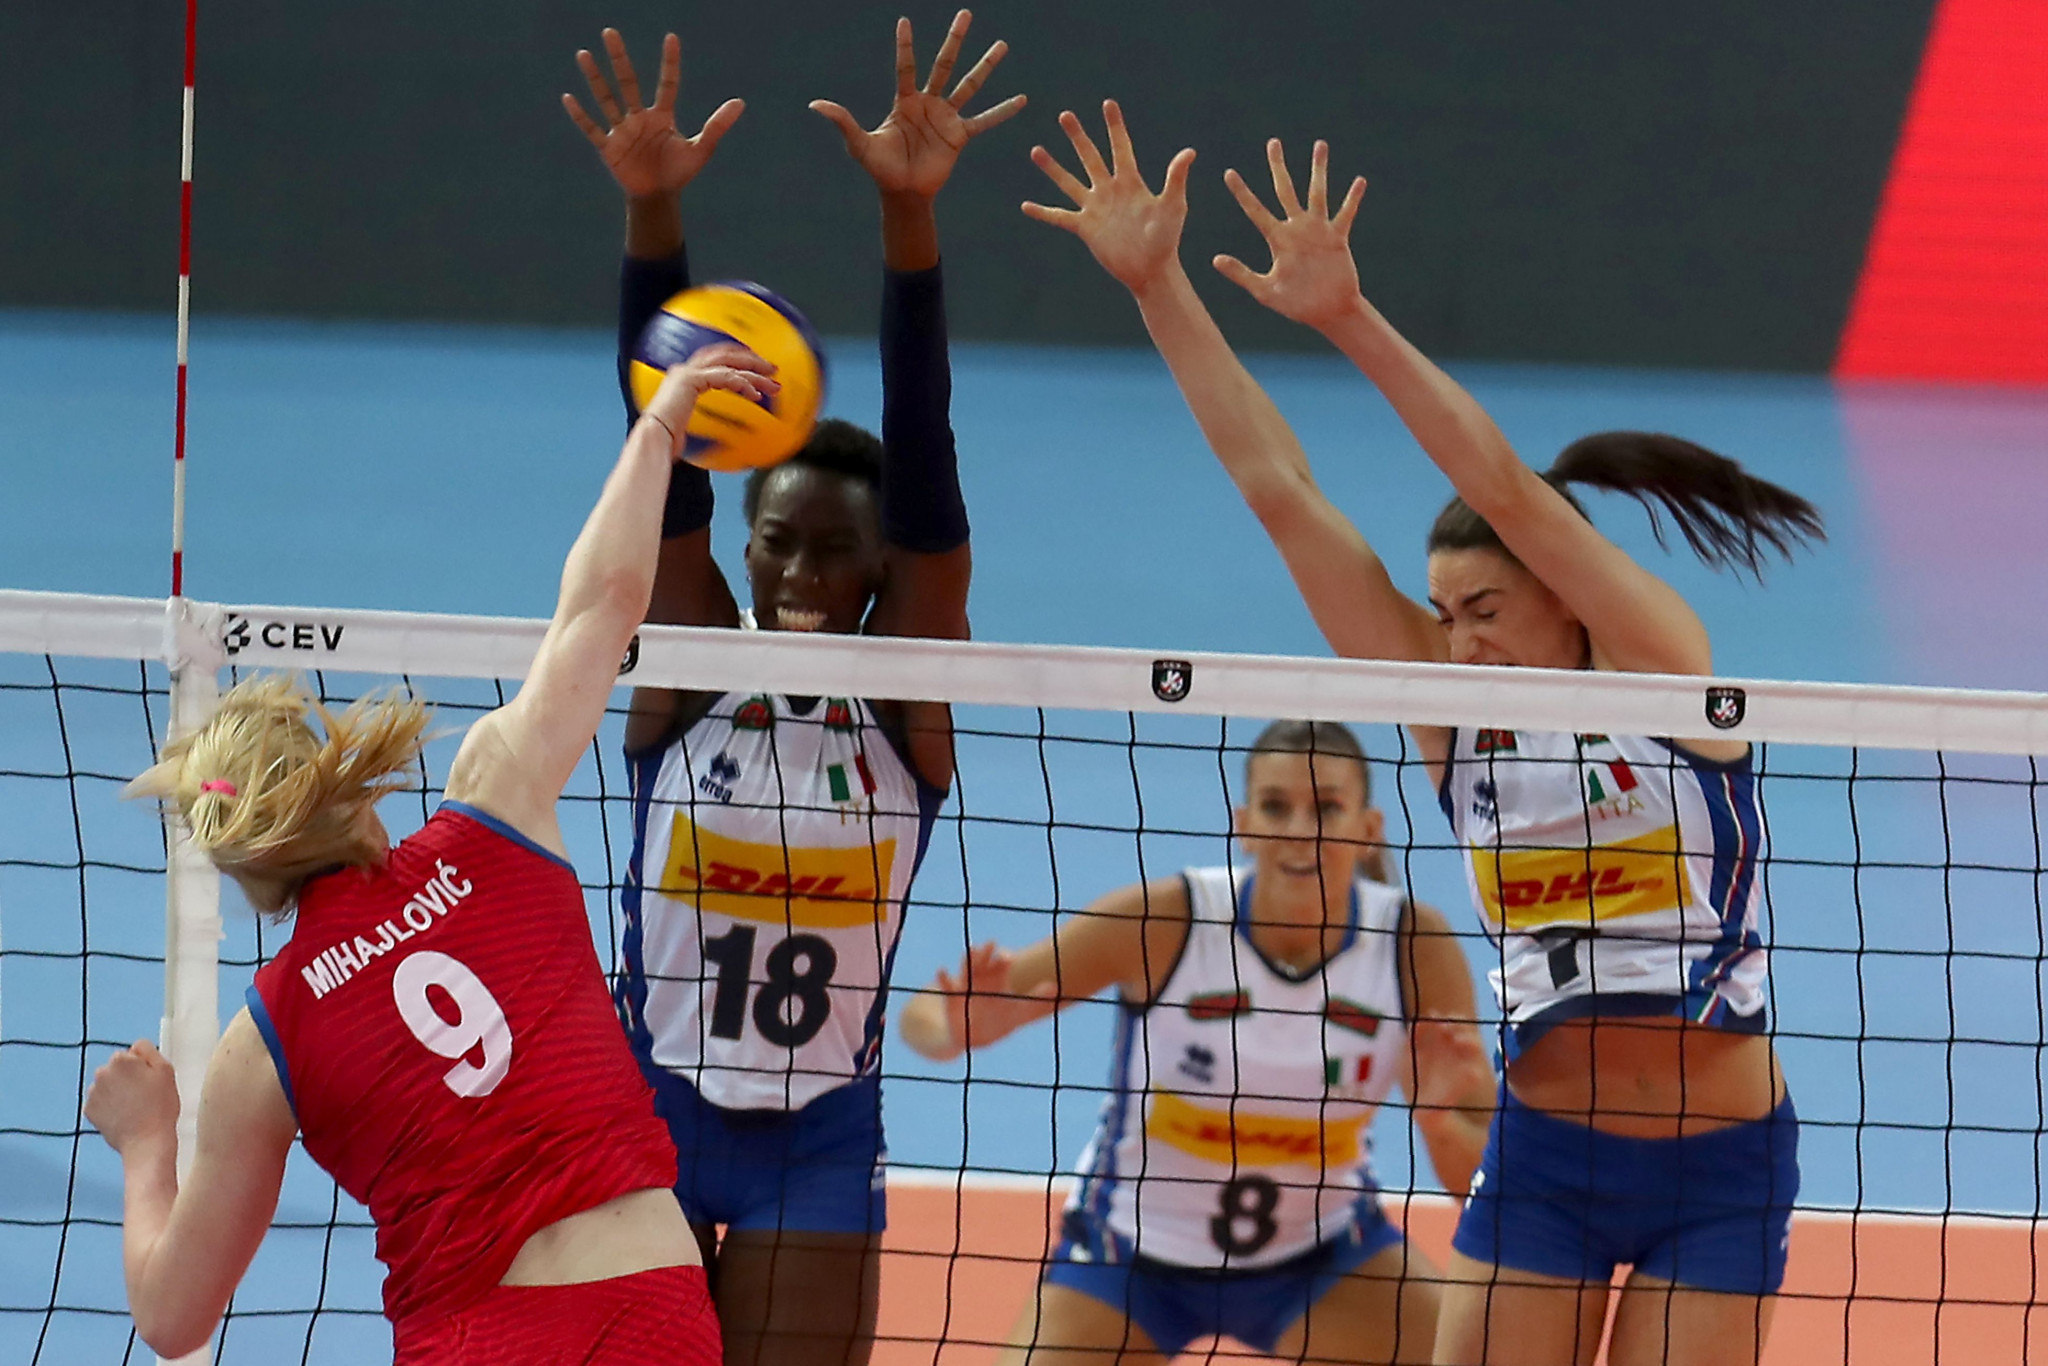 Italy are set to face Serbia in the FIVB Women's Under-20 World Championship final in Rotterdam ©Getty Images